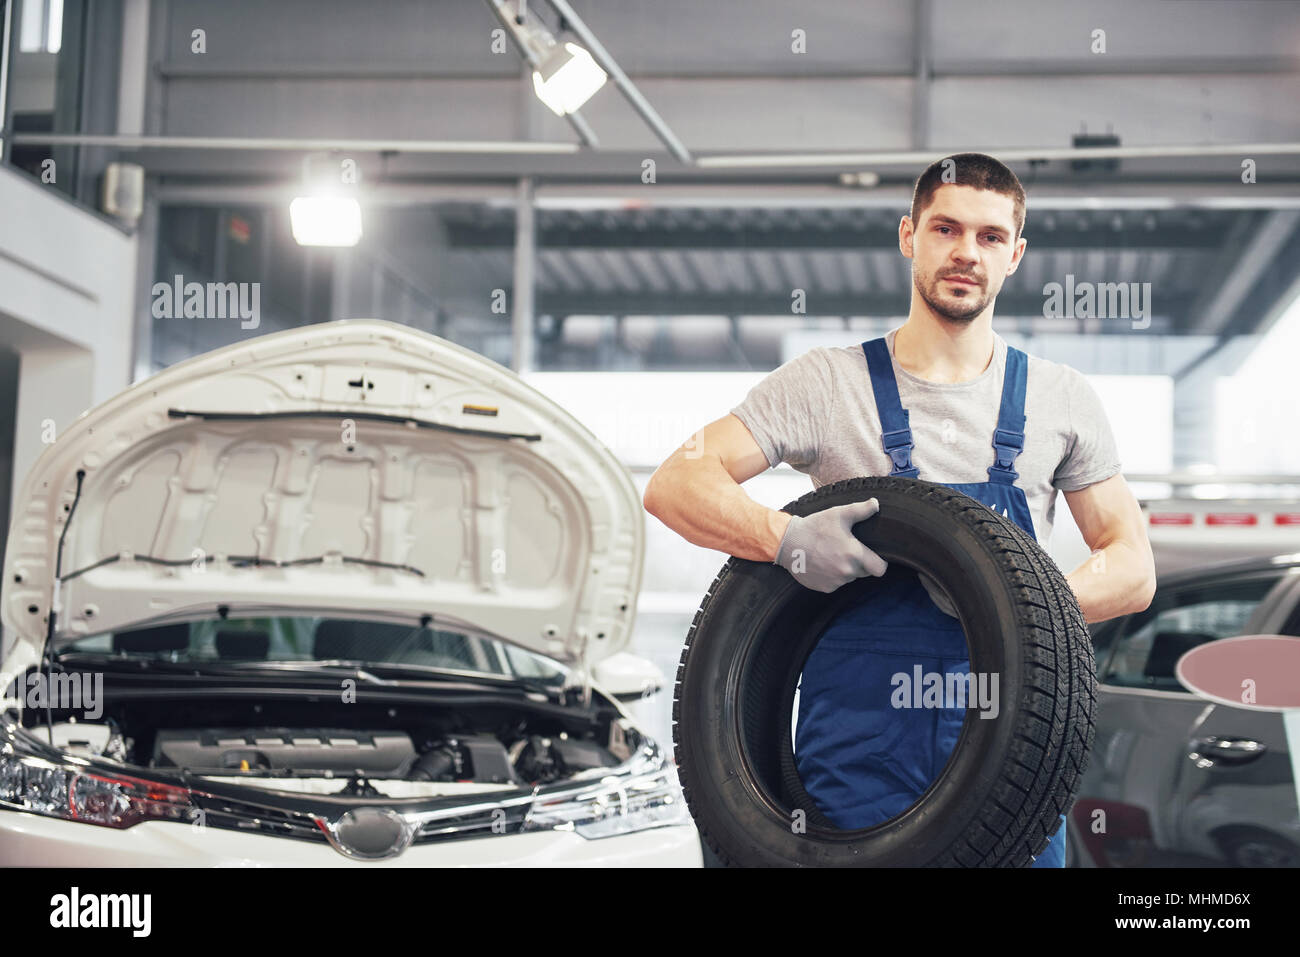 Mechanic holding a tire tire at the repair garage. replacement of winter and summer tires Stock Photo